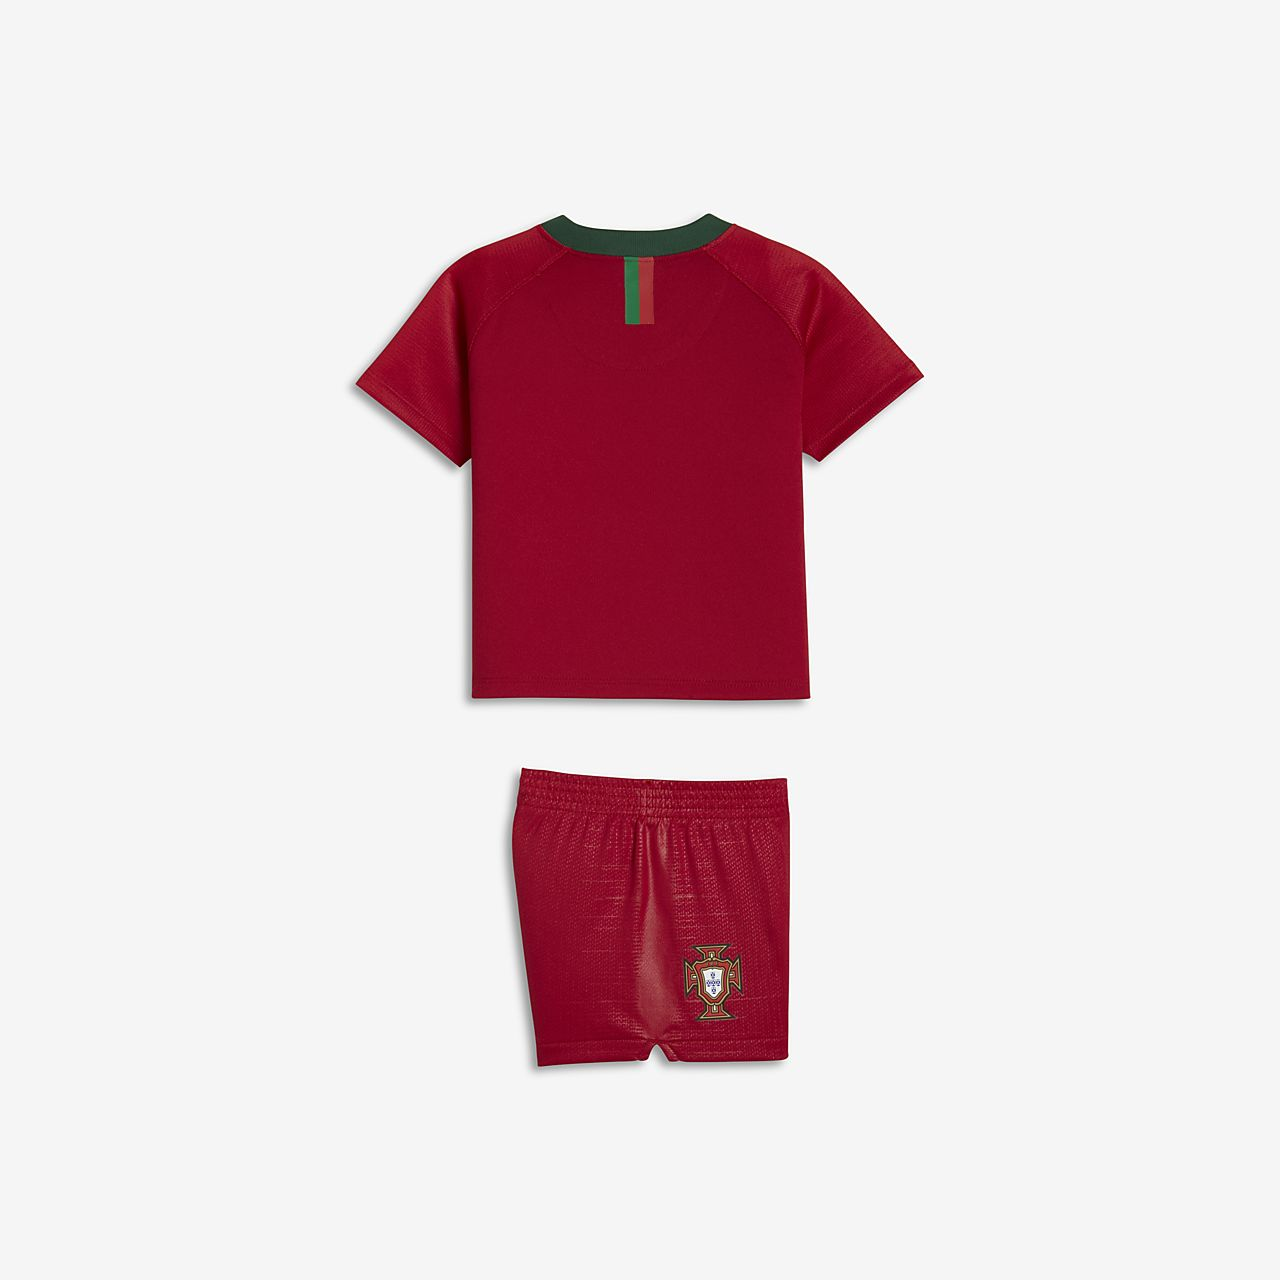 7c739baf9a4 2018 Portugal Stadium Home Baby  amp  Toddler Football Kit. Nike.com CA